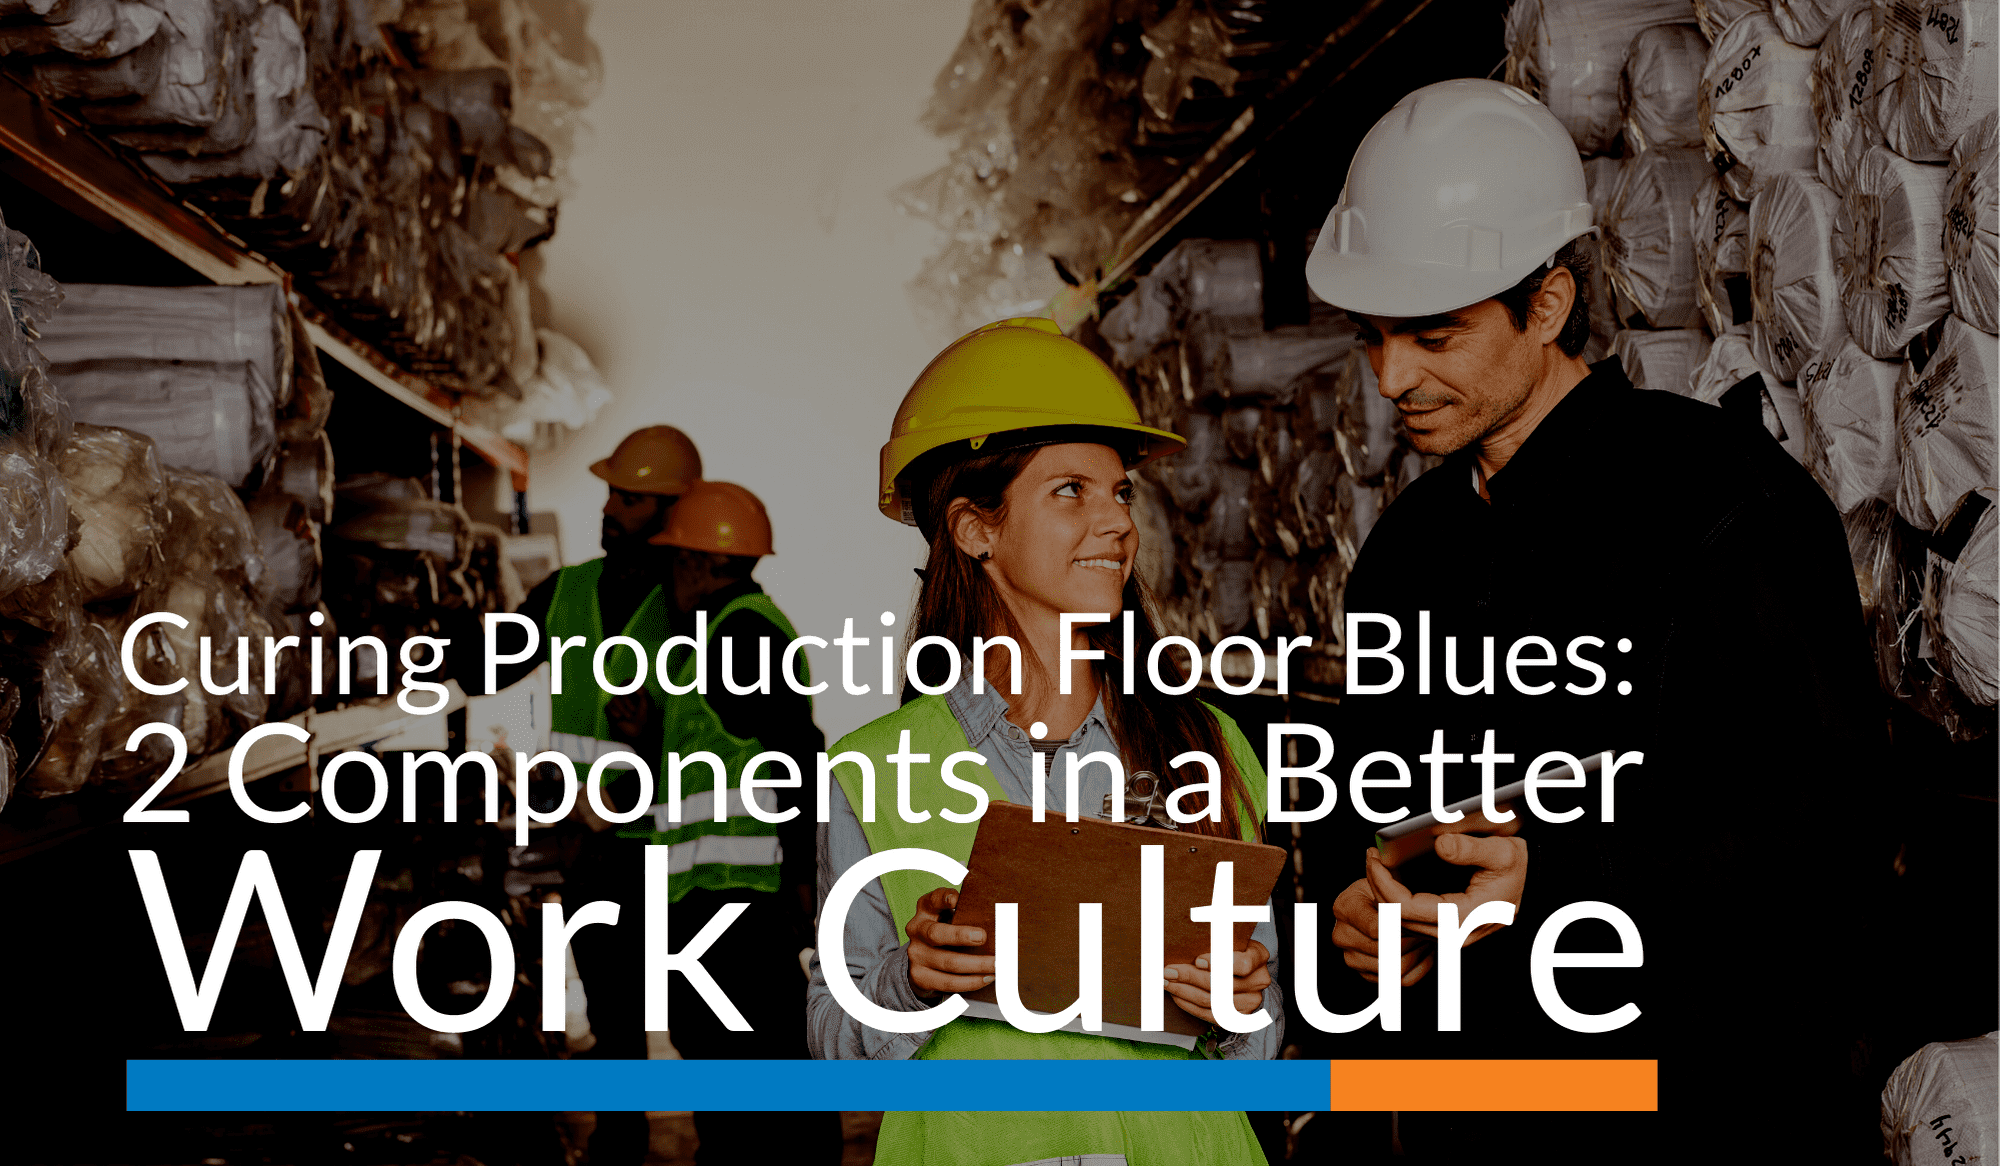 Curing Production Floor Blues: 2 Components in a Better Work Culture.